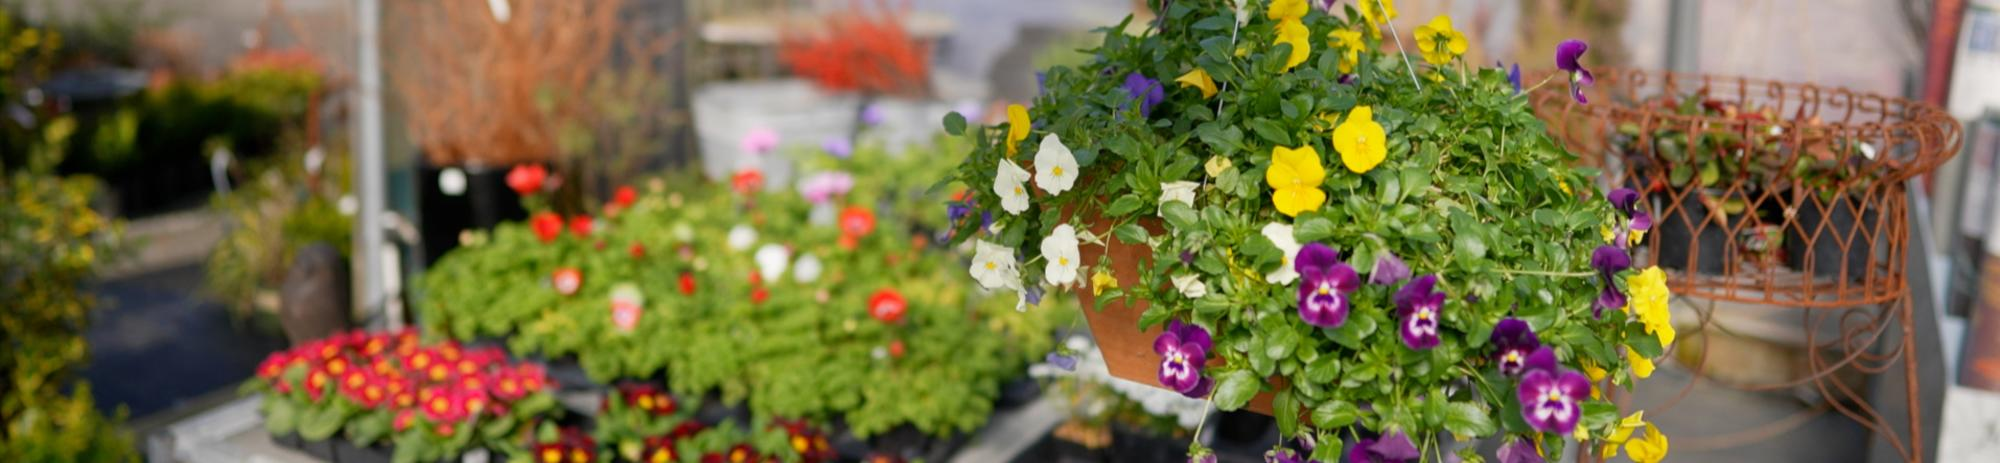 Blooming Flowers at Zenith Holland Nursery in Des Moines